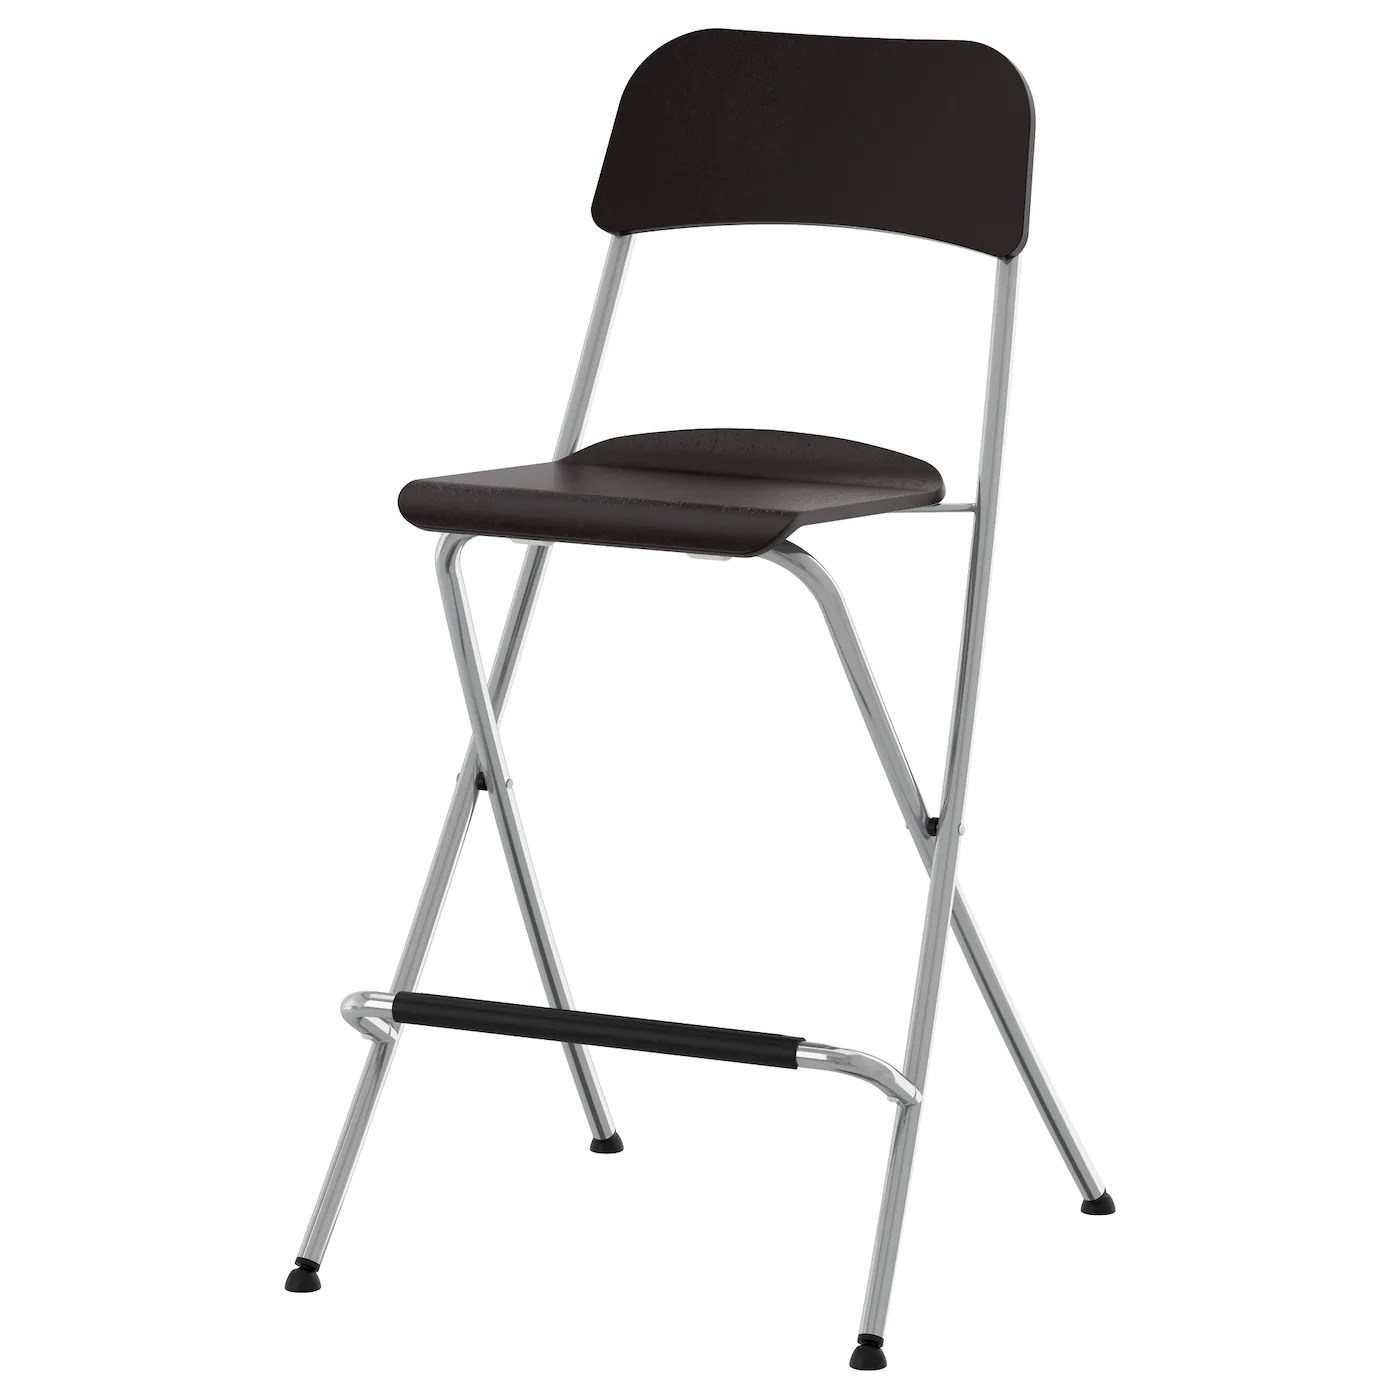 ikea foldable chairs memory foam kitchen chair pads franklin bar stool with backrest brown black